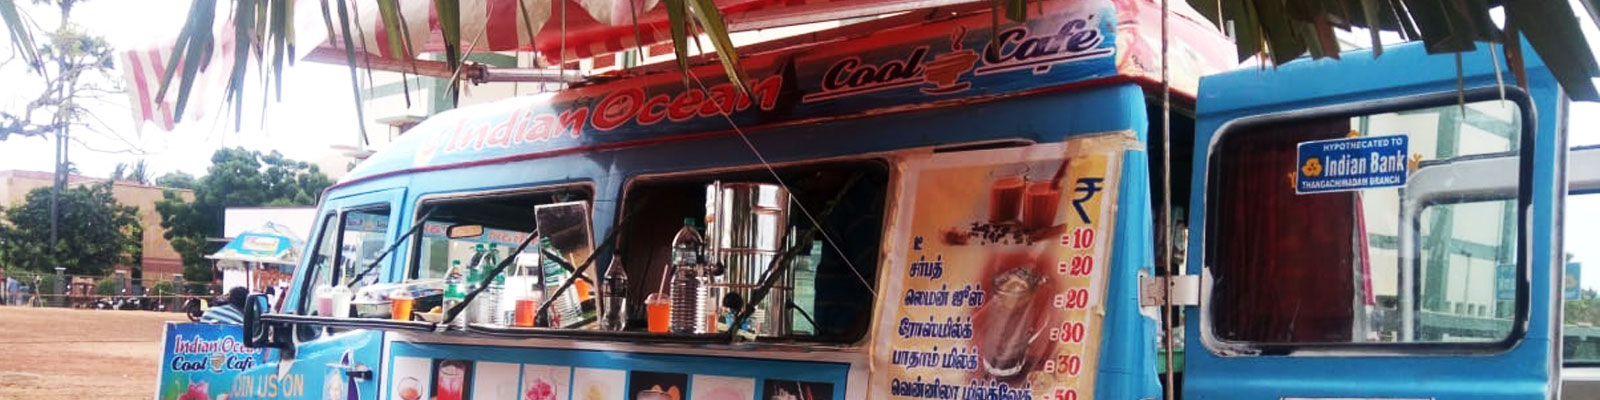 auster-indian-ocean-ice-cafe-rameswaram